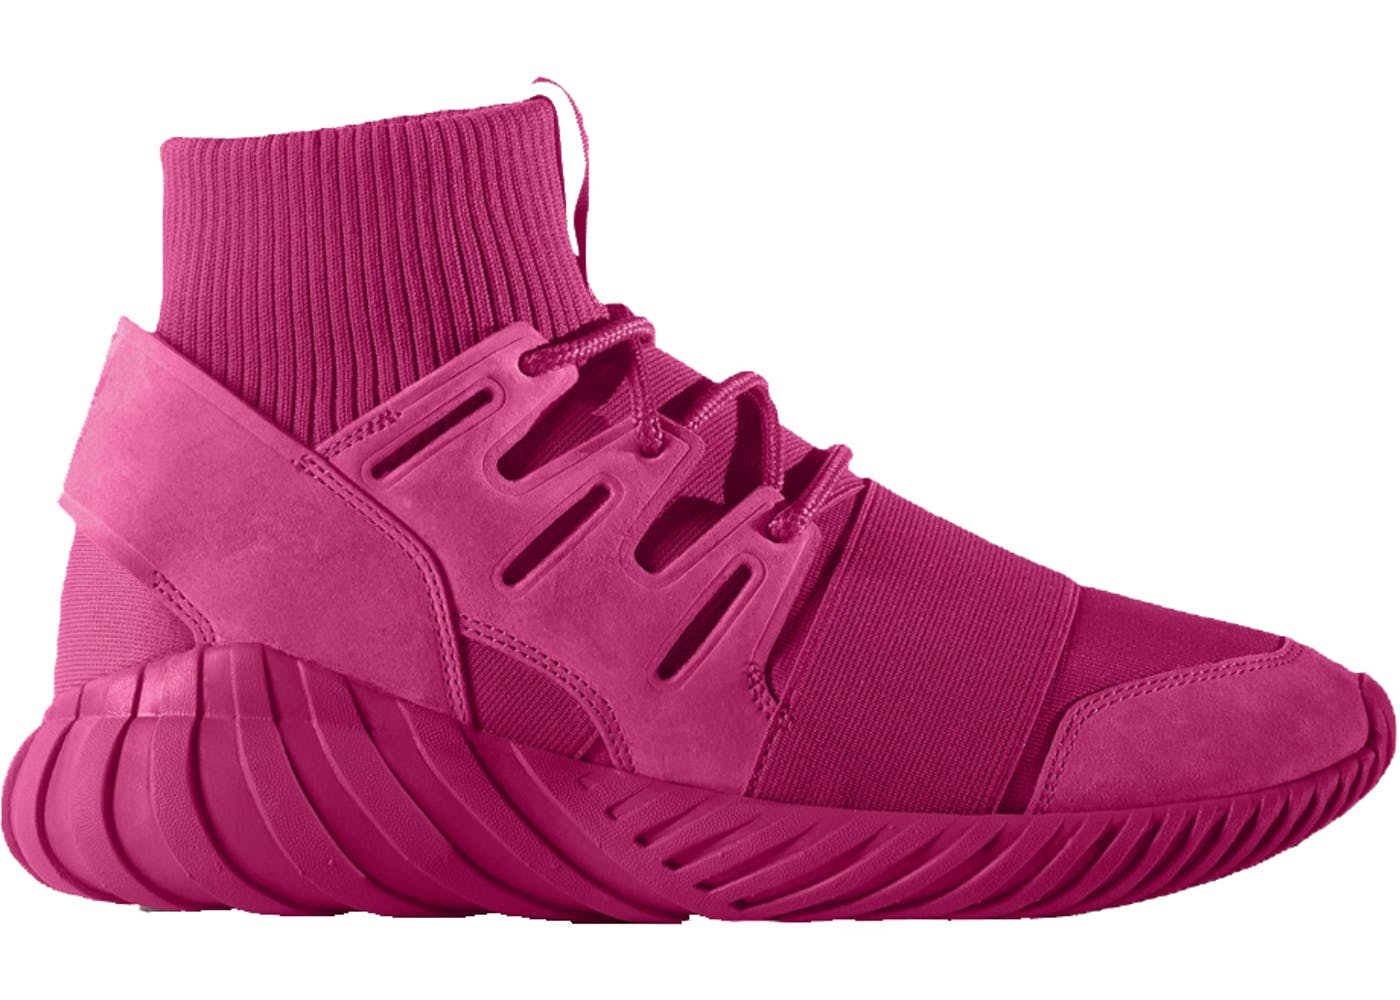 The New adidas Originals Tubular X Can Be Yours Now